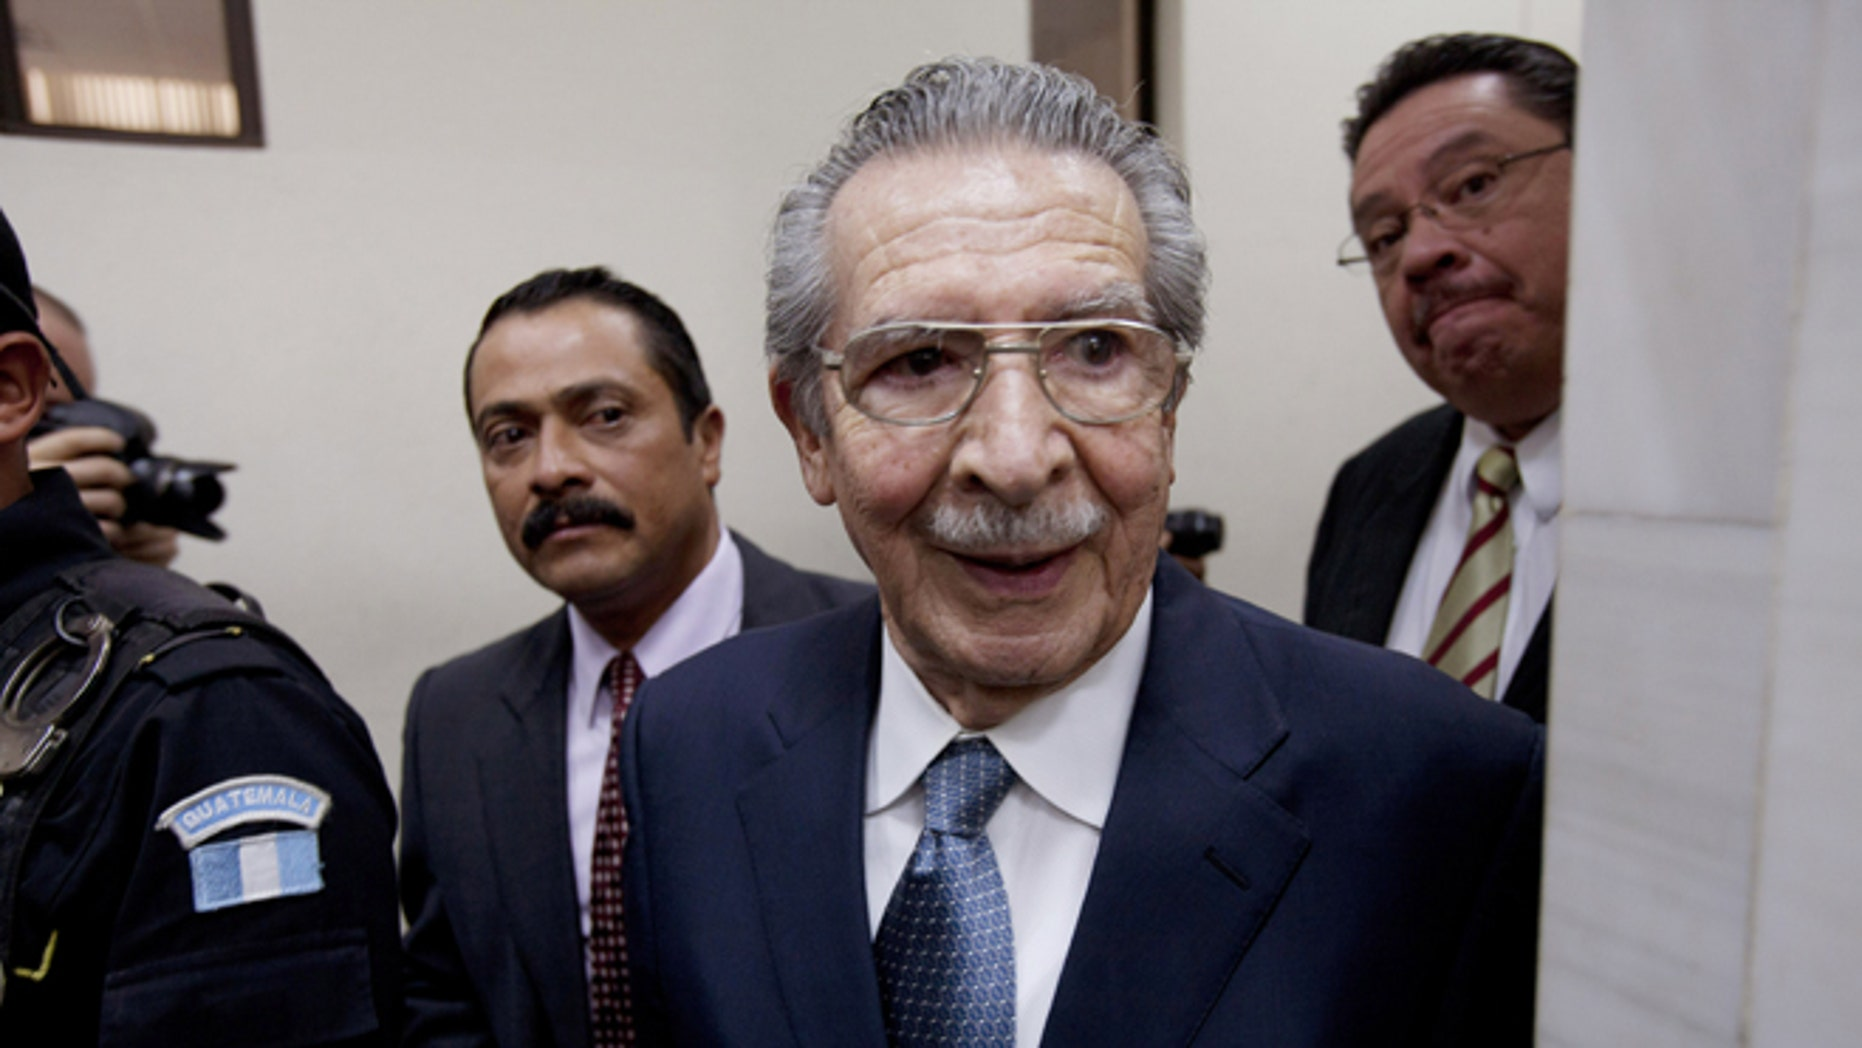 FILE - In this Jan. 24, 2013 file photo, Guatemala's former dictator Efrain Rios Montt (1982-1983) leaves the courtroom after his pre-trial hearing in Guatemala City. With his trial set to start Tuesday, March 19, 2013, prosecutors hope to painstakingly prove through a detailed recreation of the military chain of command that Rios Montt must have had knowledge of the massacres of Mayan Indians and others in the Guatemalan highlands. Because he held absolute power over the U.S.-backed military government, his failure to stop the slaughter is proof of his guilt, prosecutors and lawyers for victims say. (AP Photo/Moises Castillo, File)